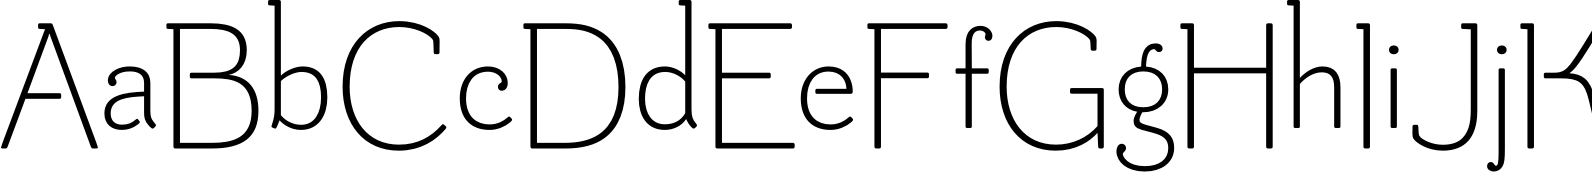 Be Creative Extralight Font